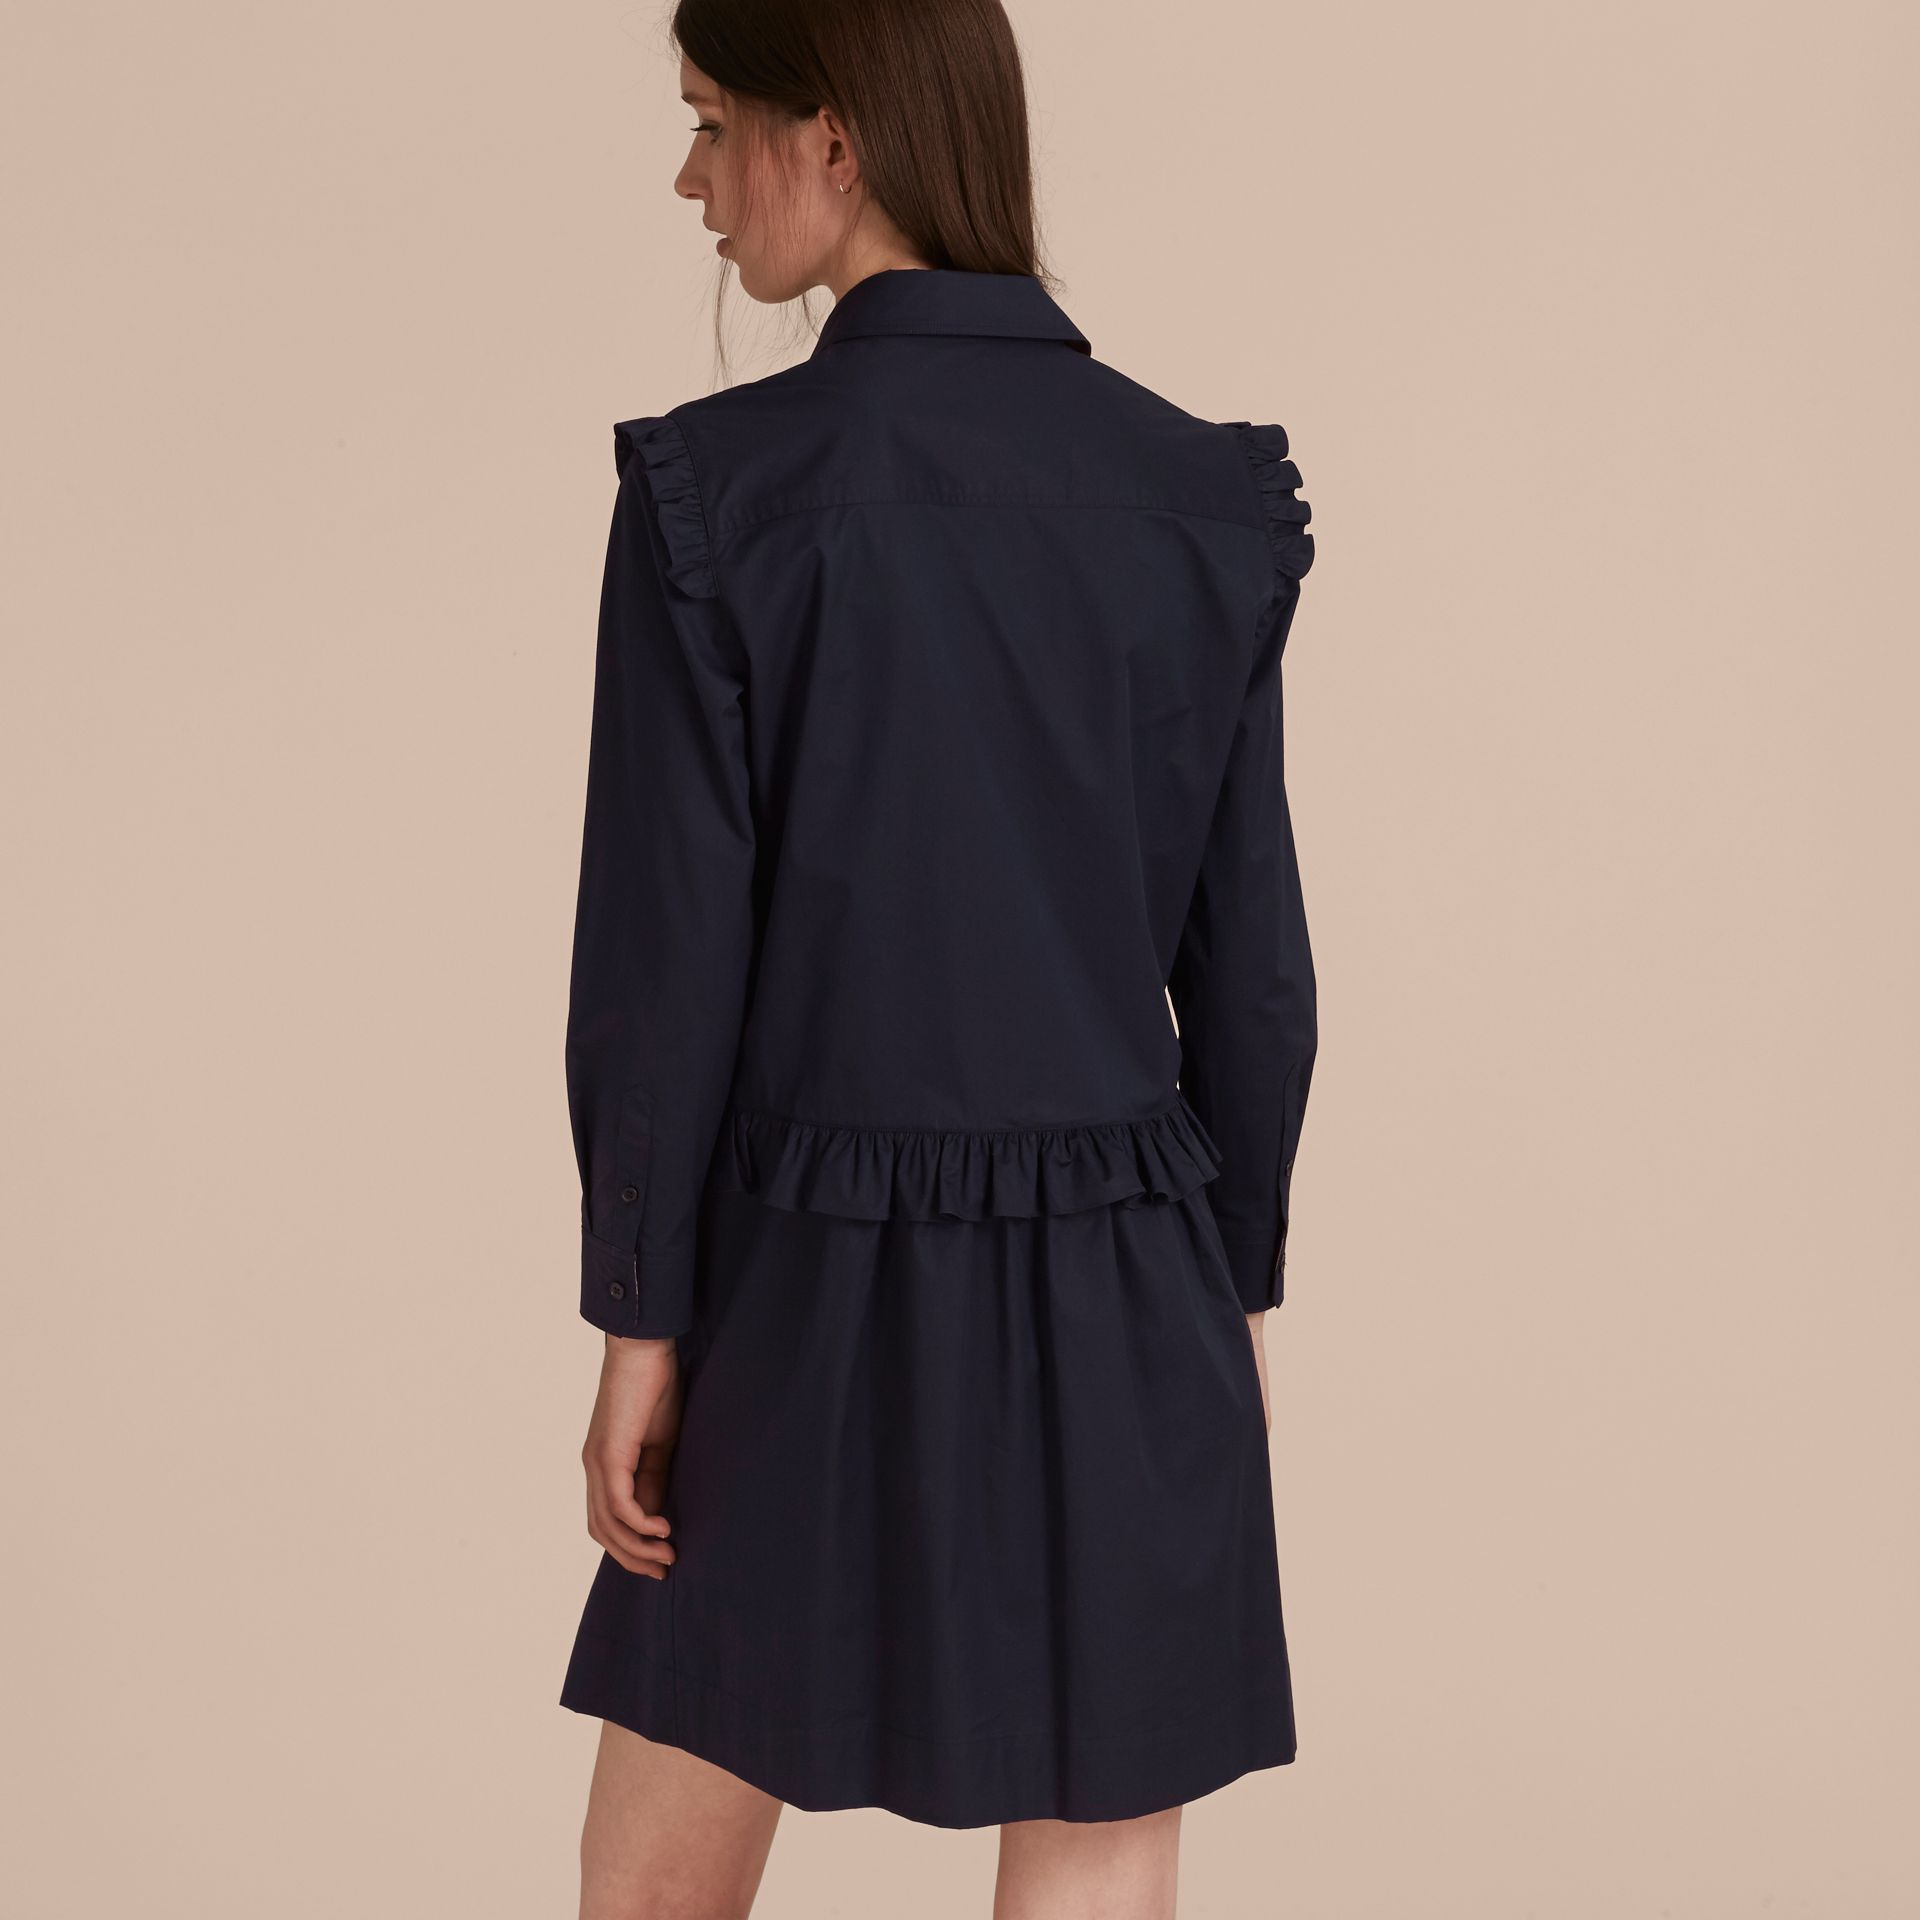 Ruffle and Check Detail Cotton Shirt Dress Navy - gallery image 3